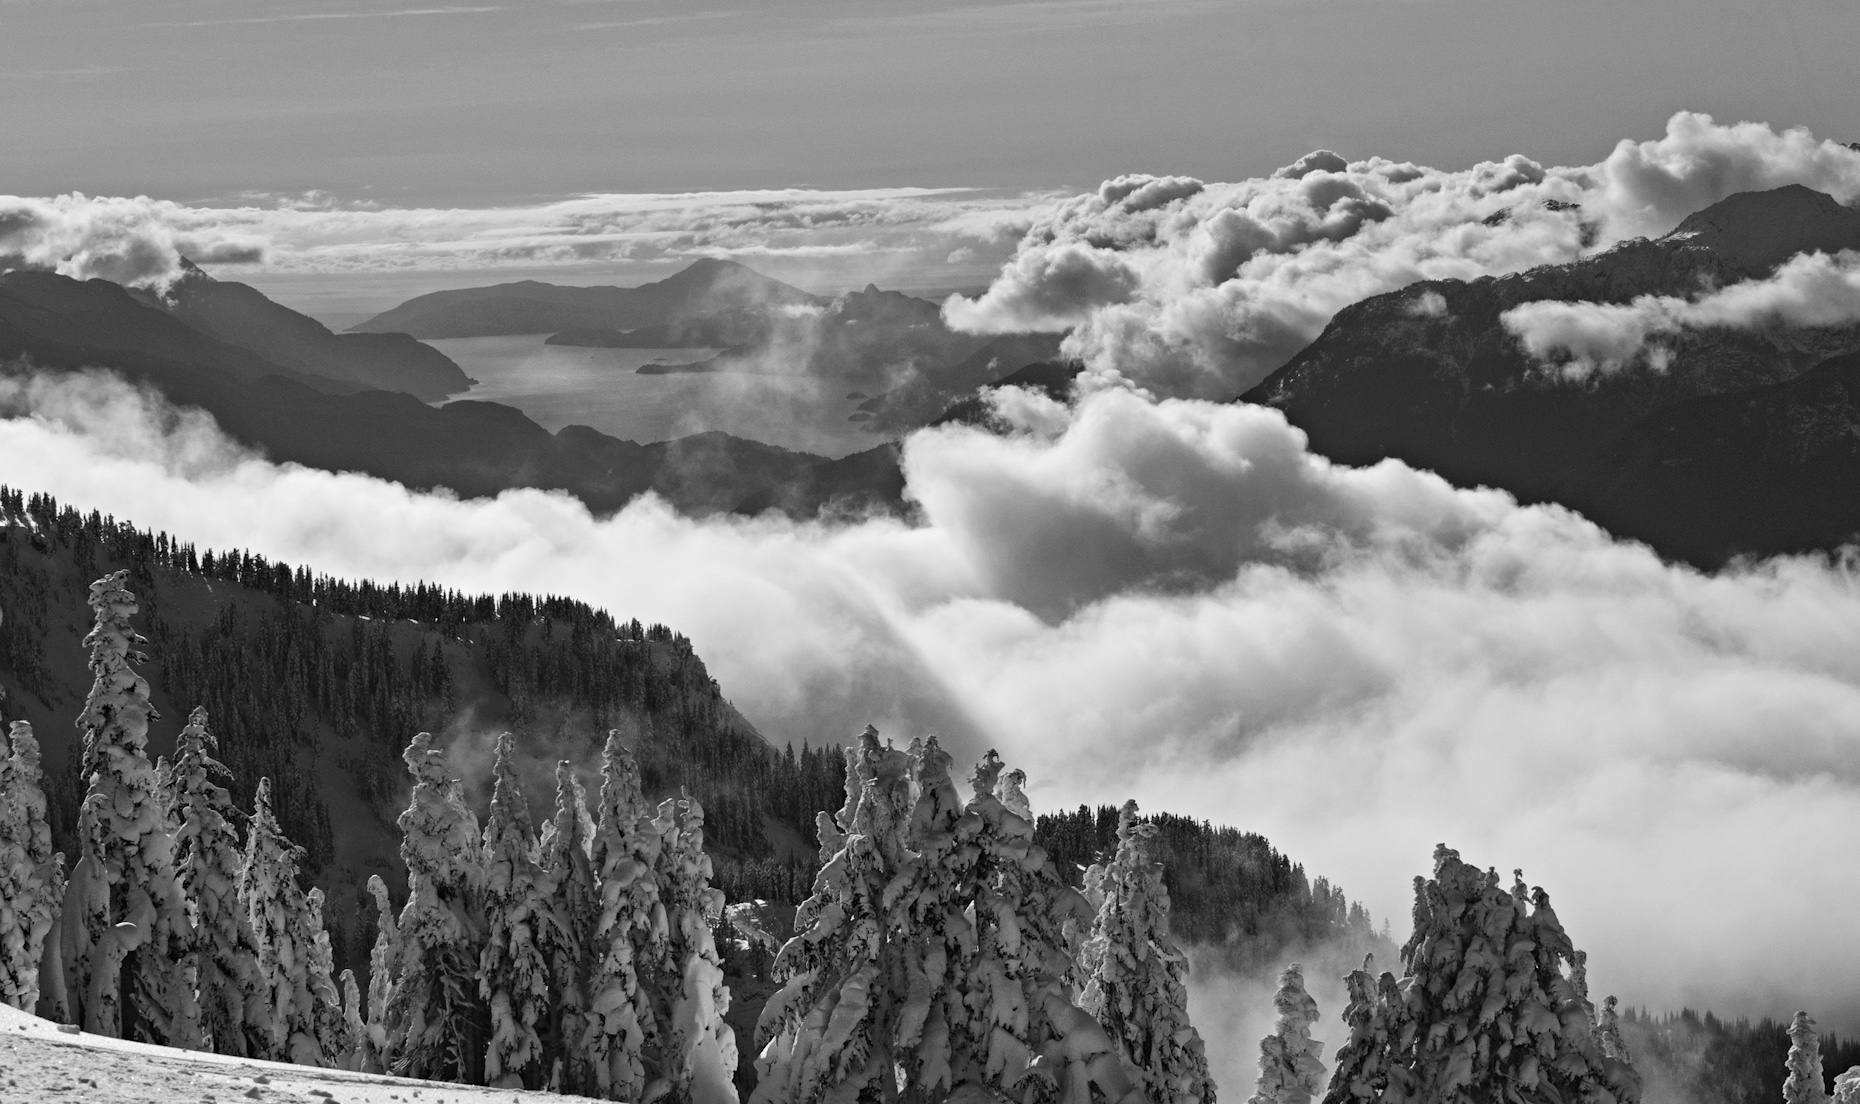 Howe_sound_Barrys_peak_Brohm_nov_25_2012